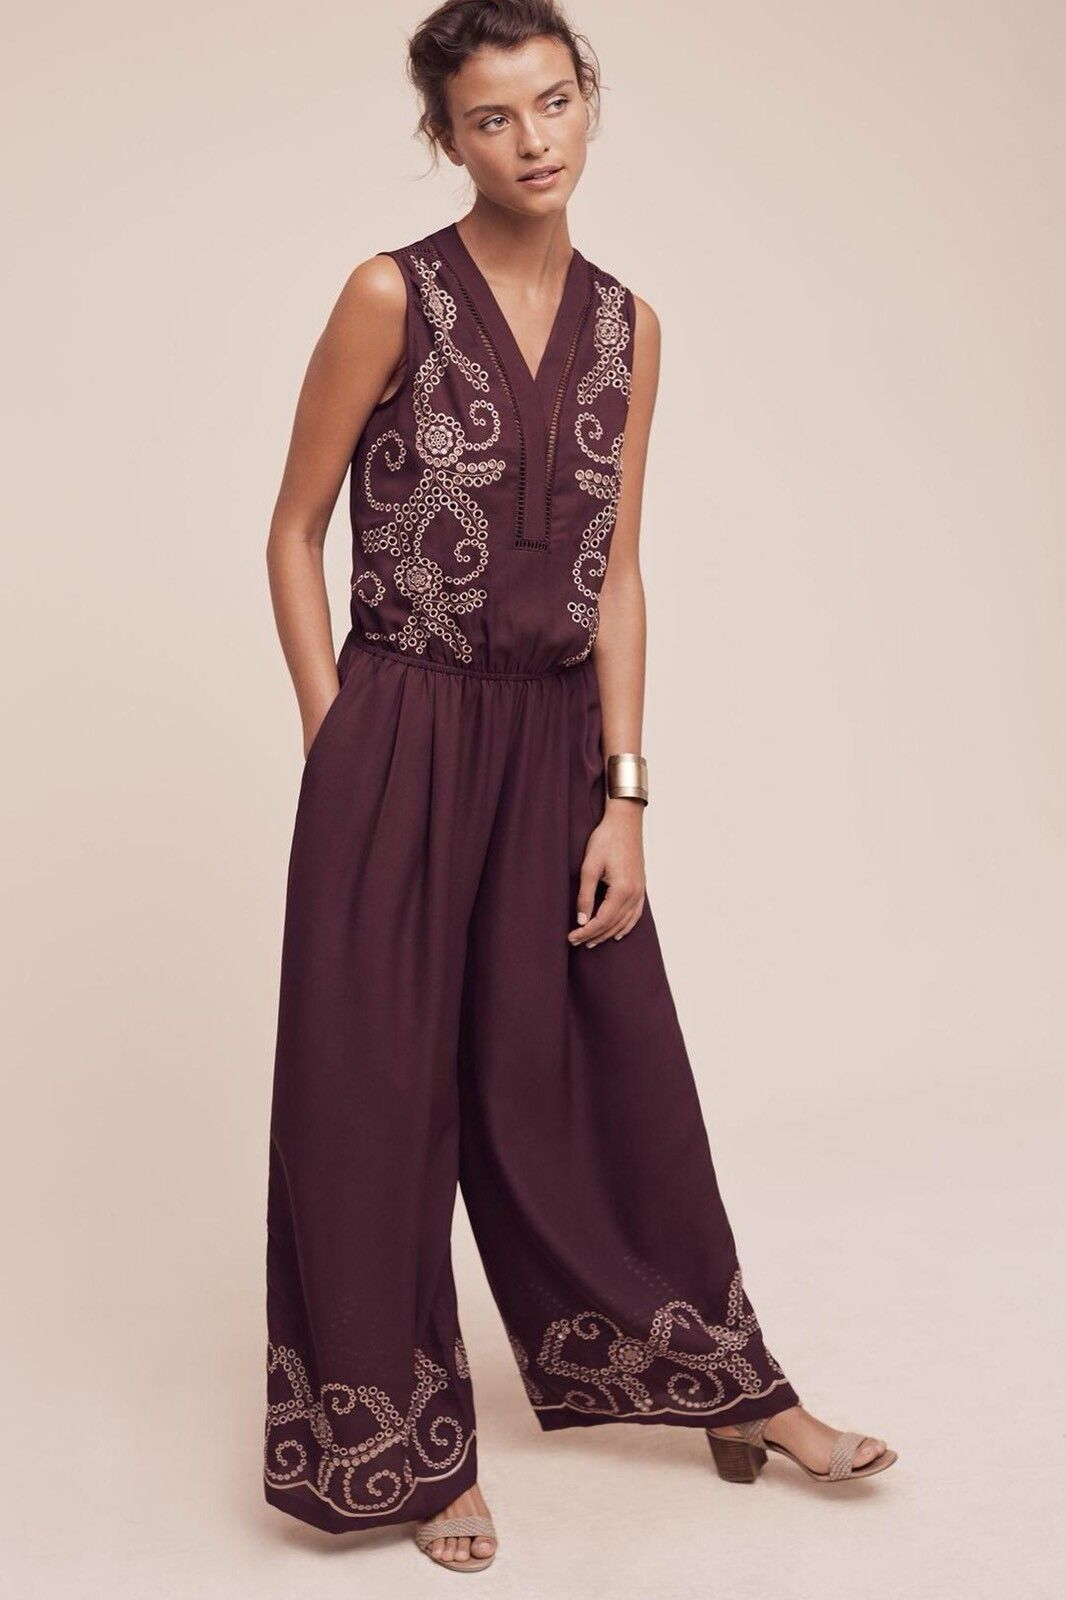 Anthropologie Teresa Embroidered Jumpsuit by Ranna Gill Size Sz Medium Petite MP